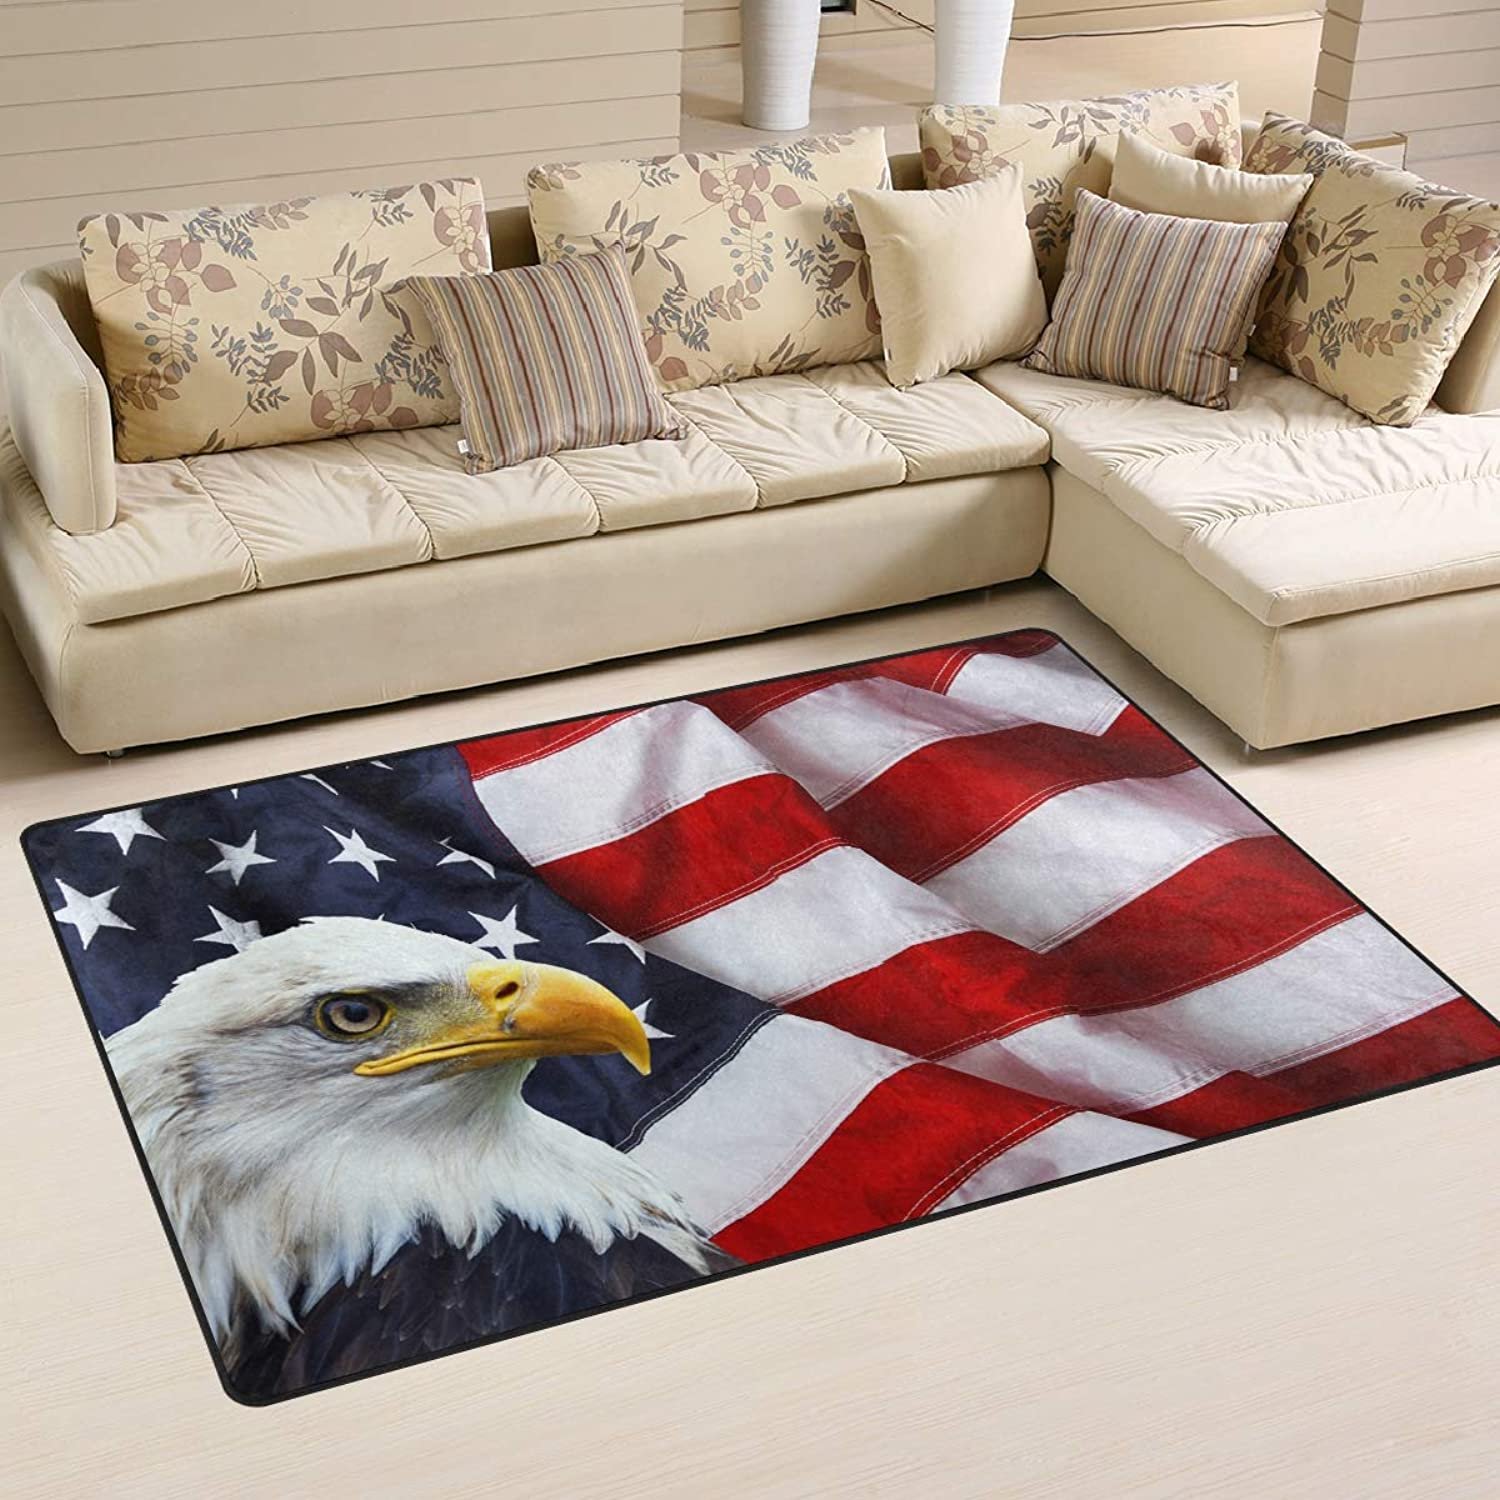 Area Rugs Doormats Eagle and American Flag 5'x3'3 (60x39 Inches) Non-Slip Floor Mat Soft Carpet for Living Dining Bedroom Home